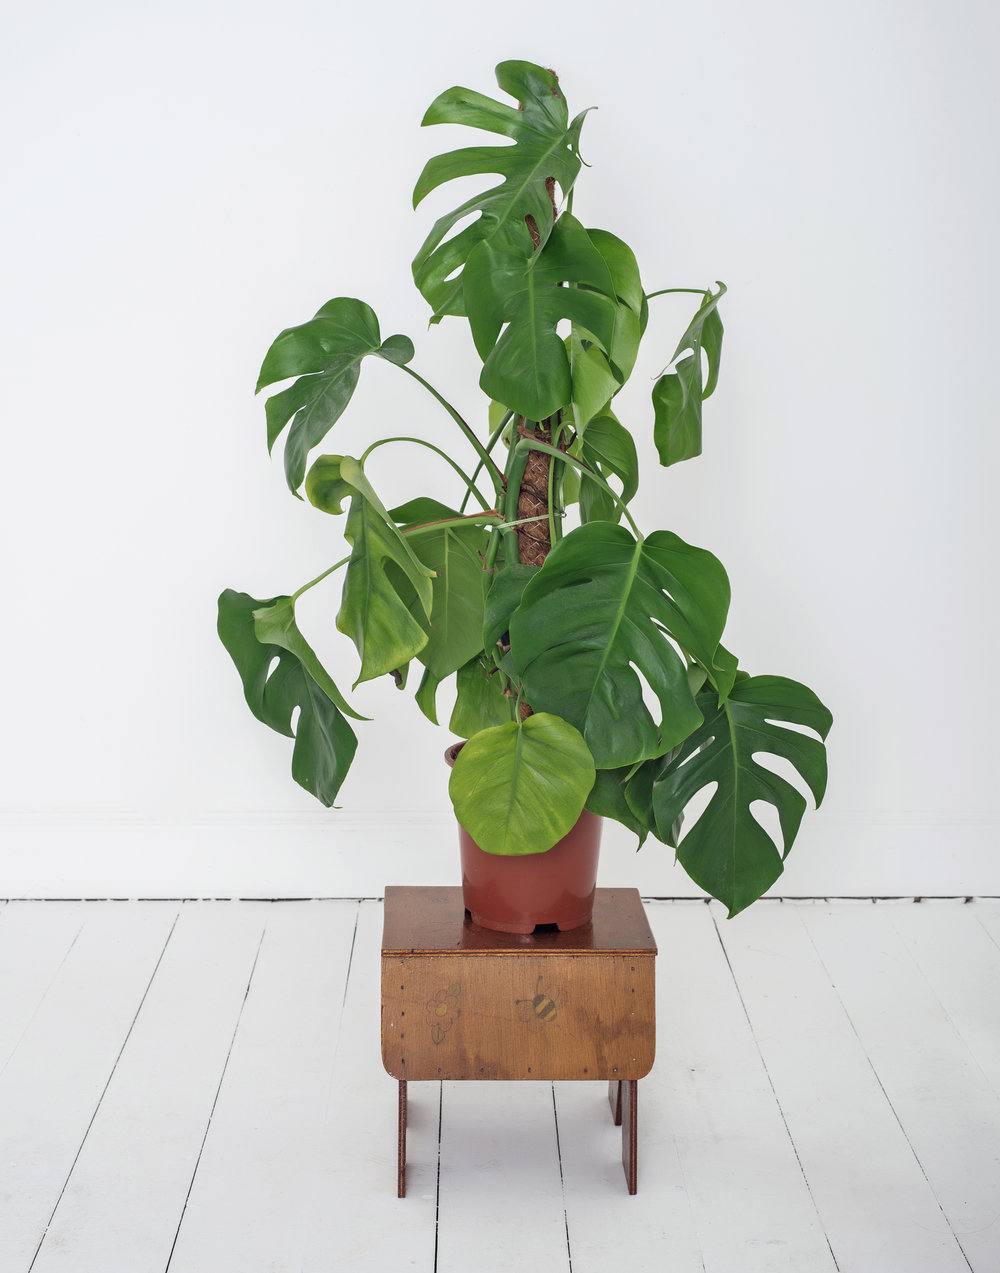 Plant on a wooden desk